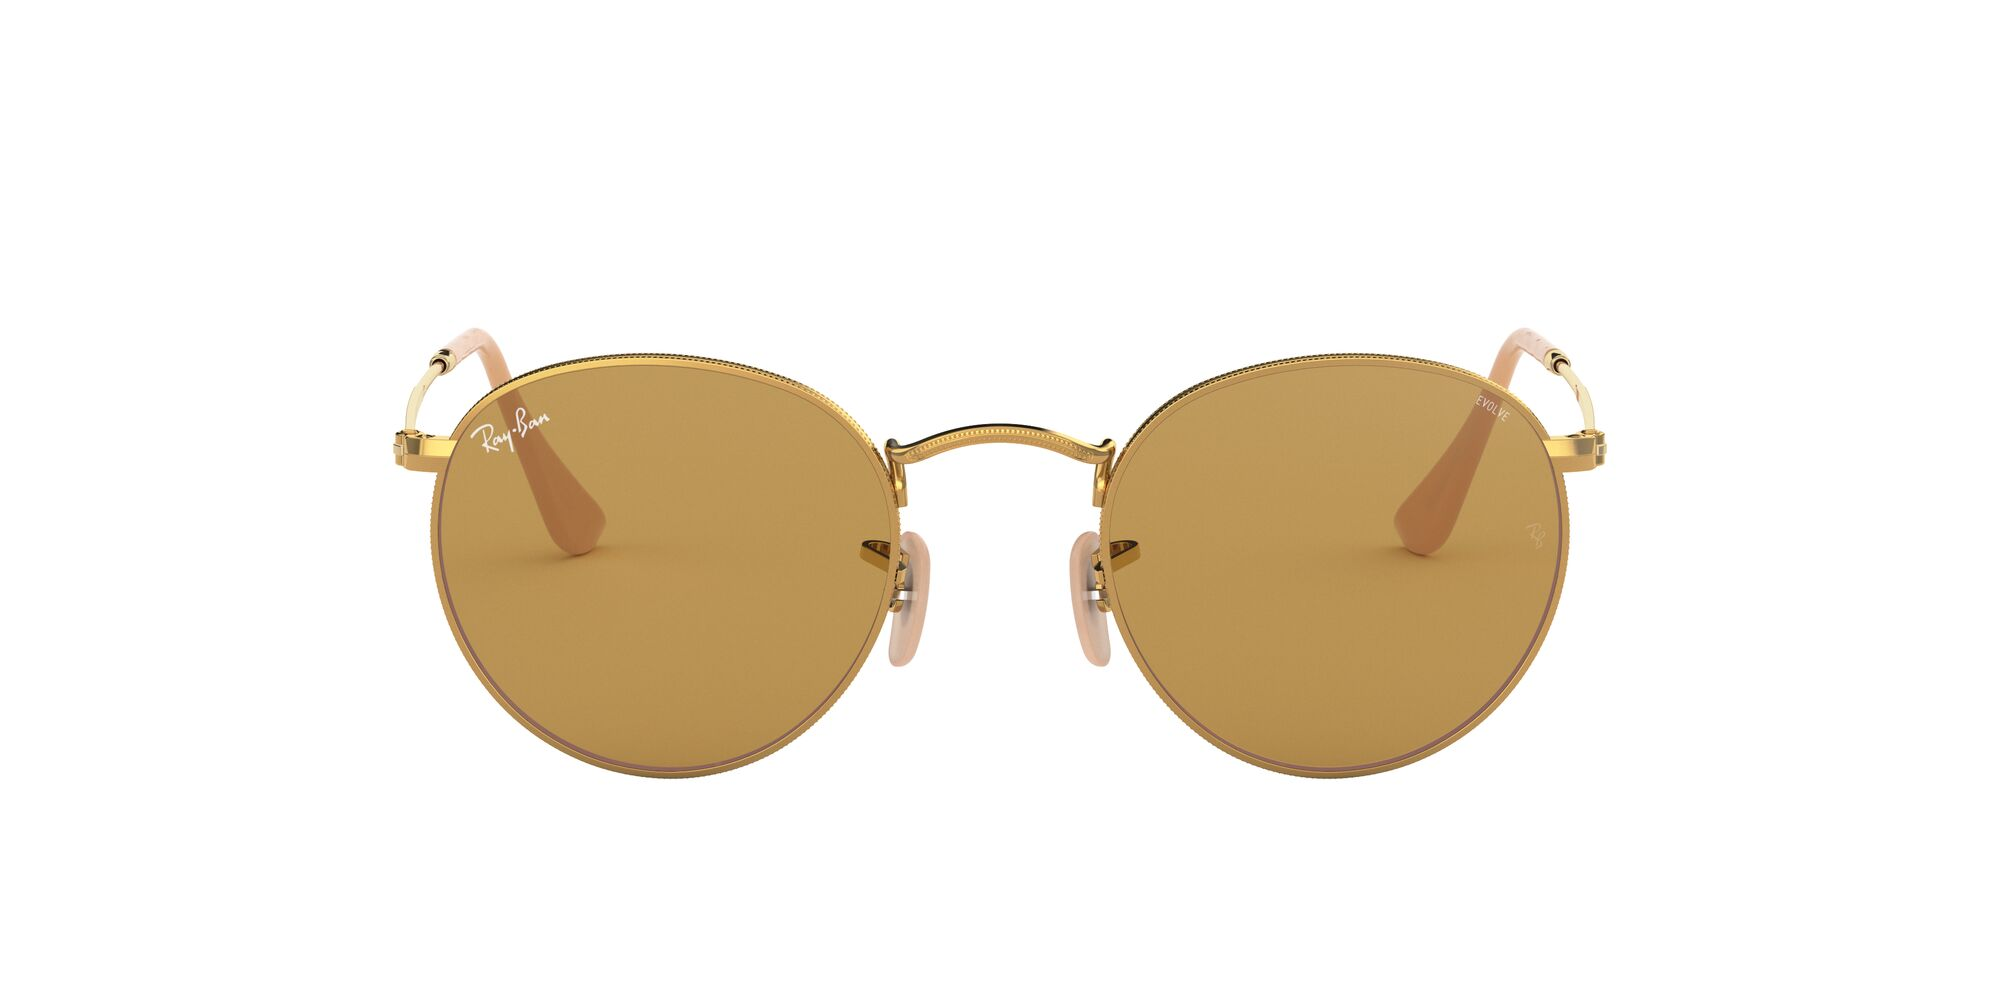 Front Ray-Ban Ray-Ban 0RB3447 90644I 50/21 Goud/Bruin